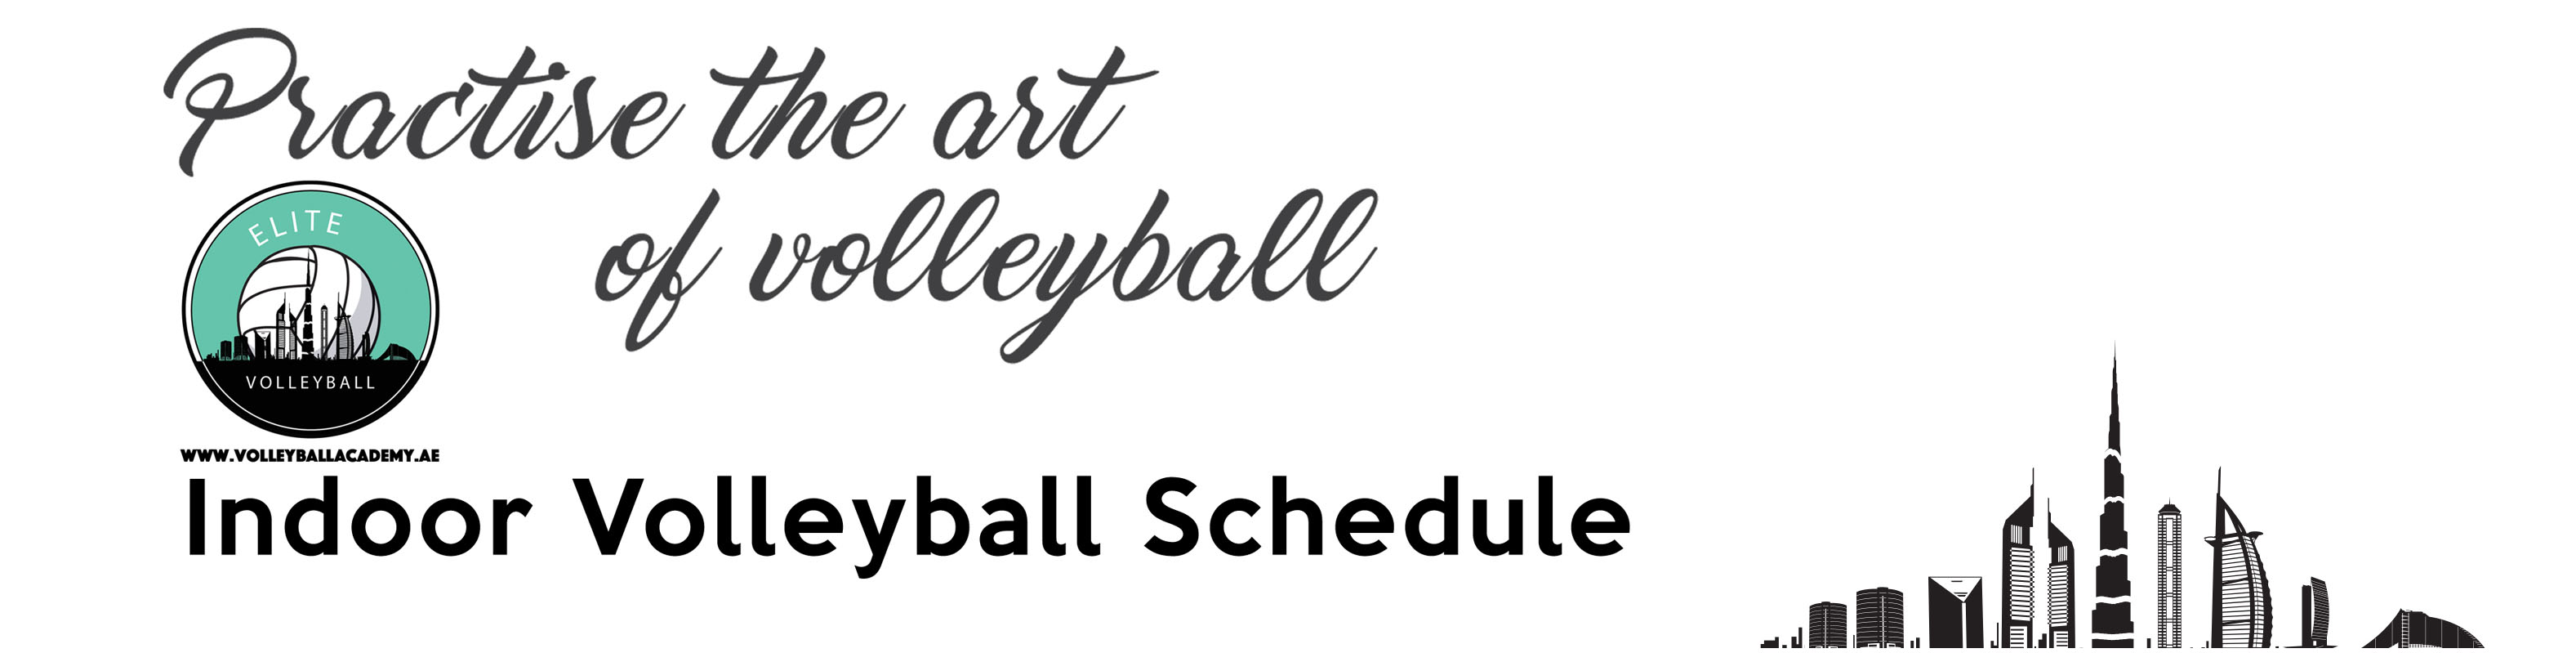 Schedule Volleyball Academy Dubai